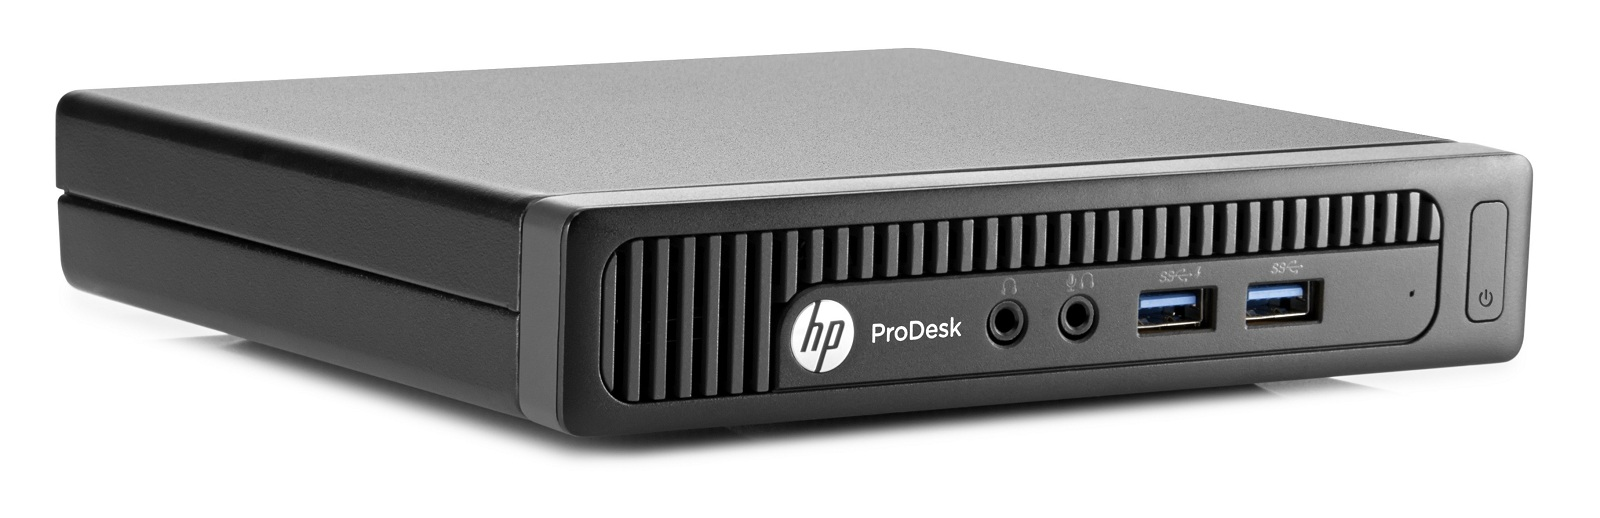 HP Prodesk 600 G2 Mini